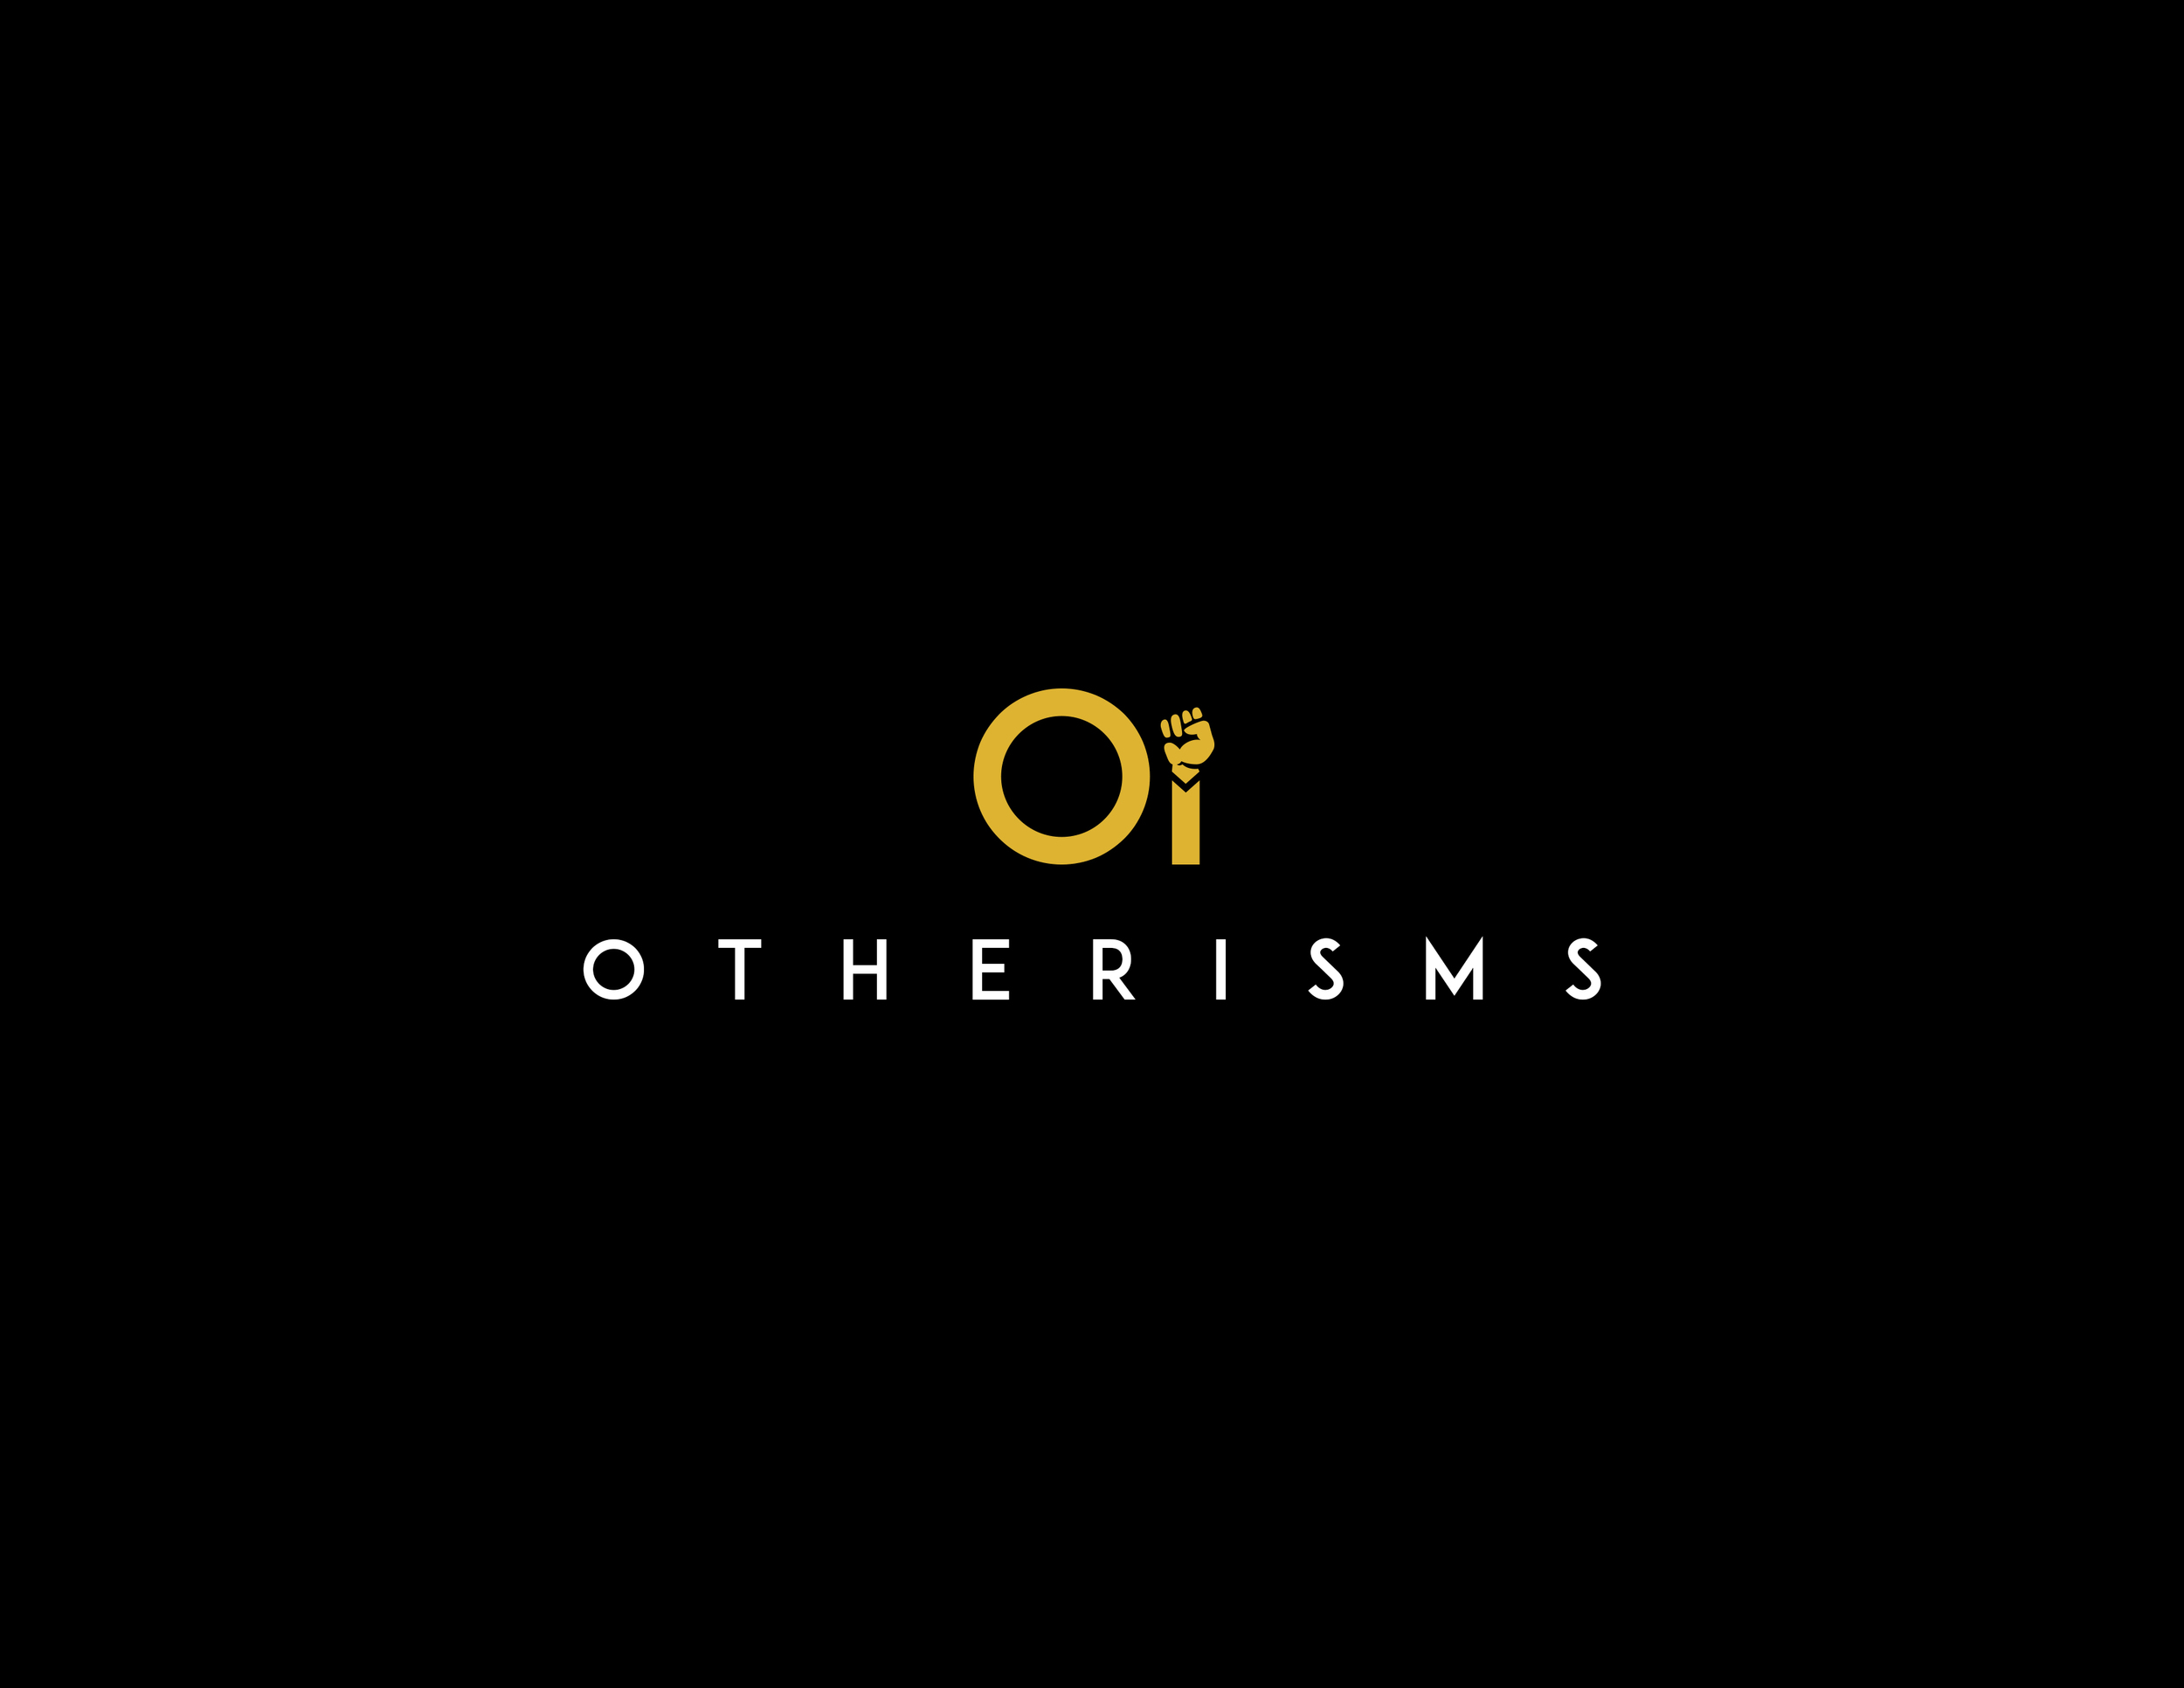 Otherisms_Logo_OI_FIST.jpg